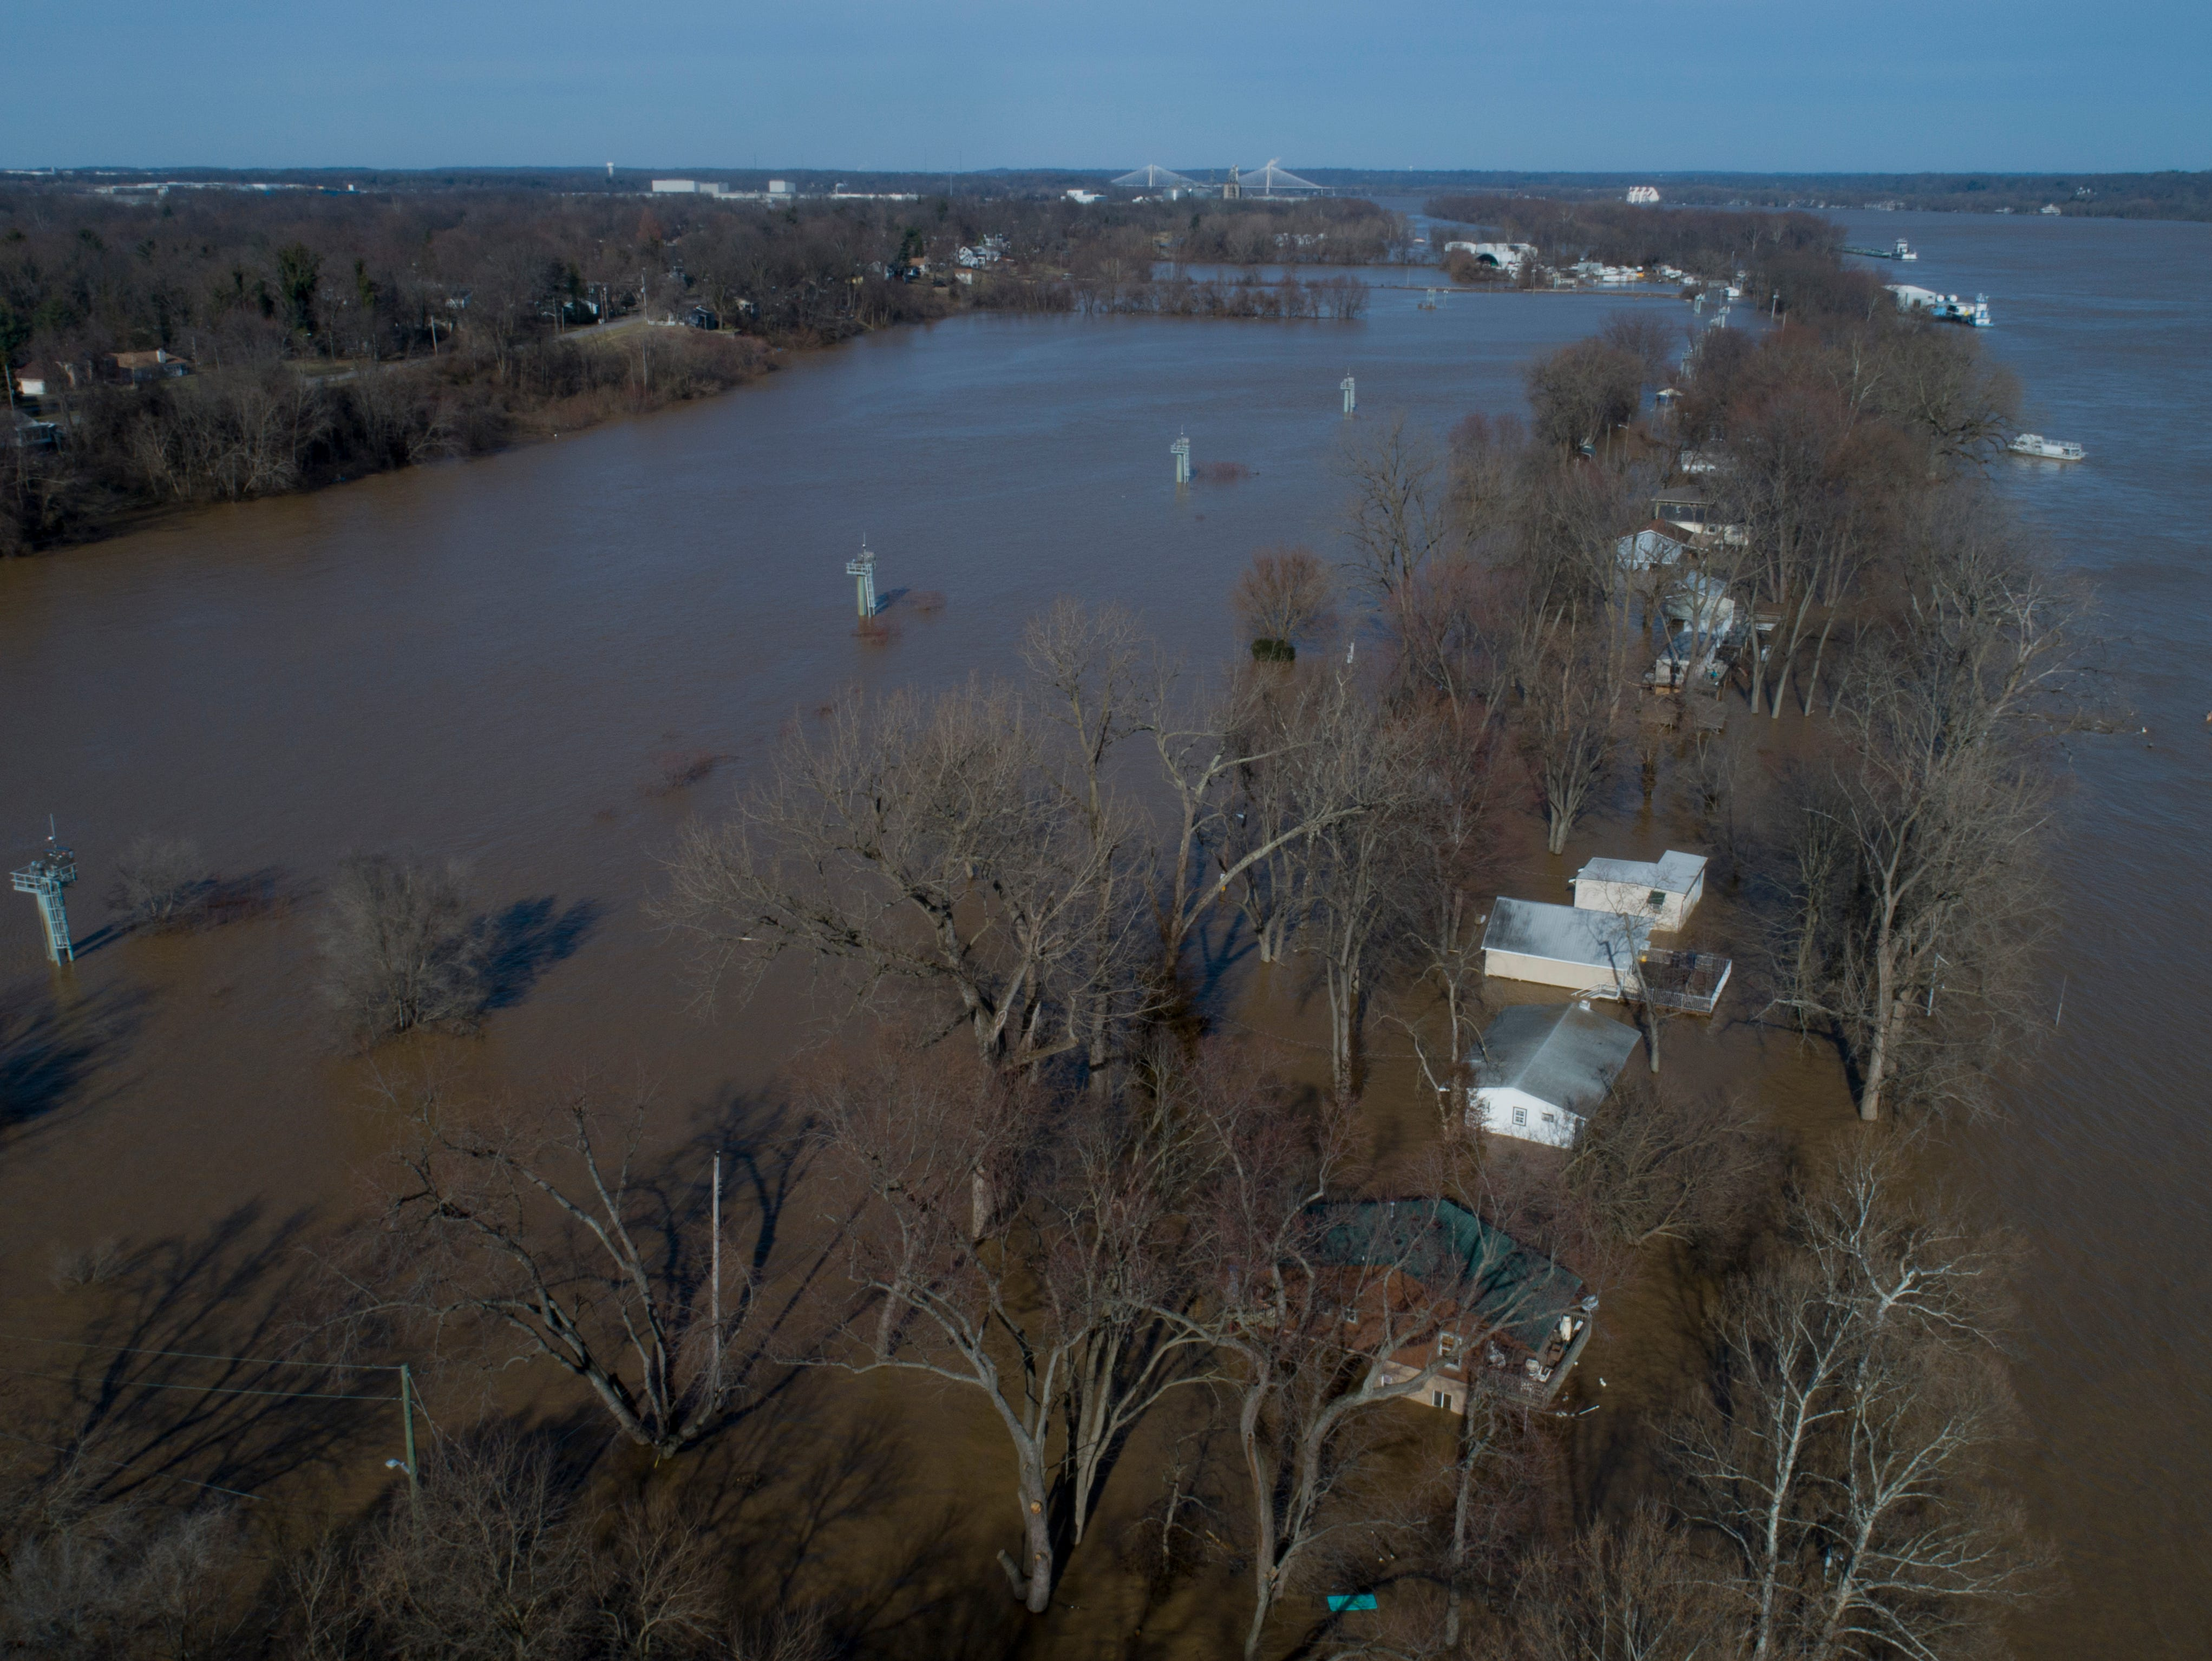 Flood waters surround the homes on Utica Pike on Wednesday afternoon. Feb. 13, 2019